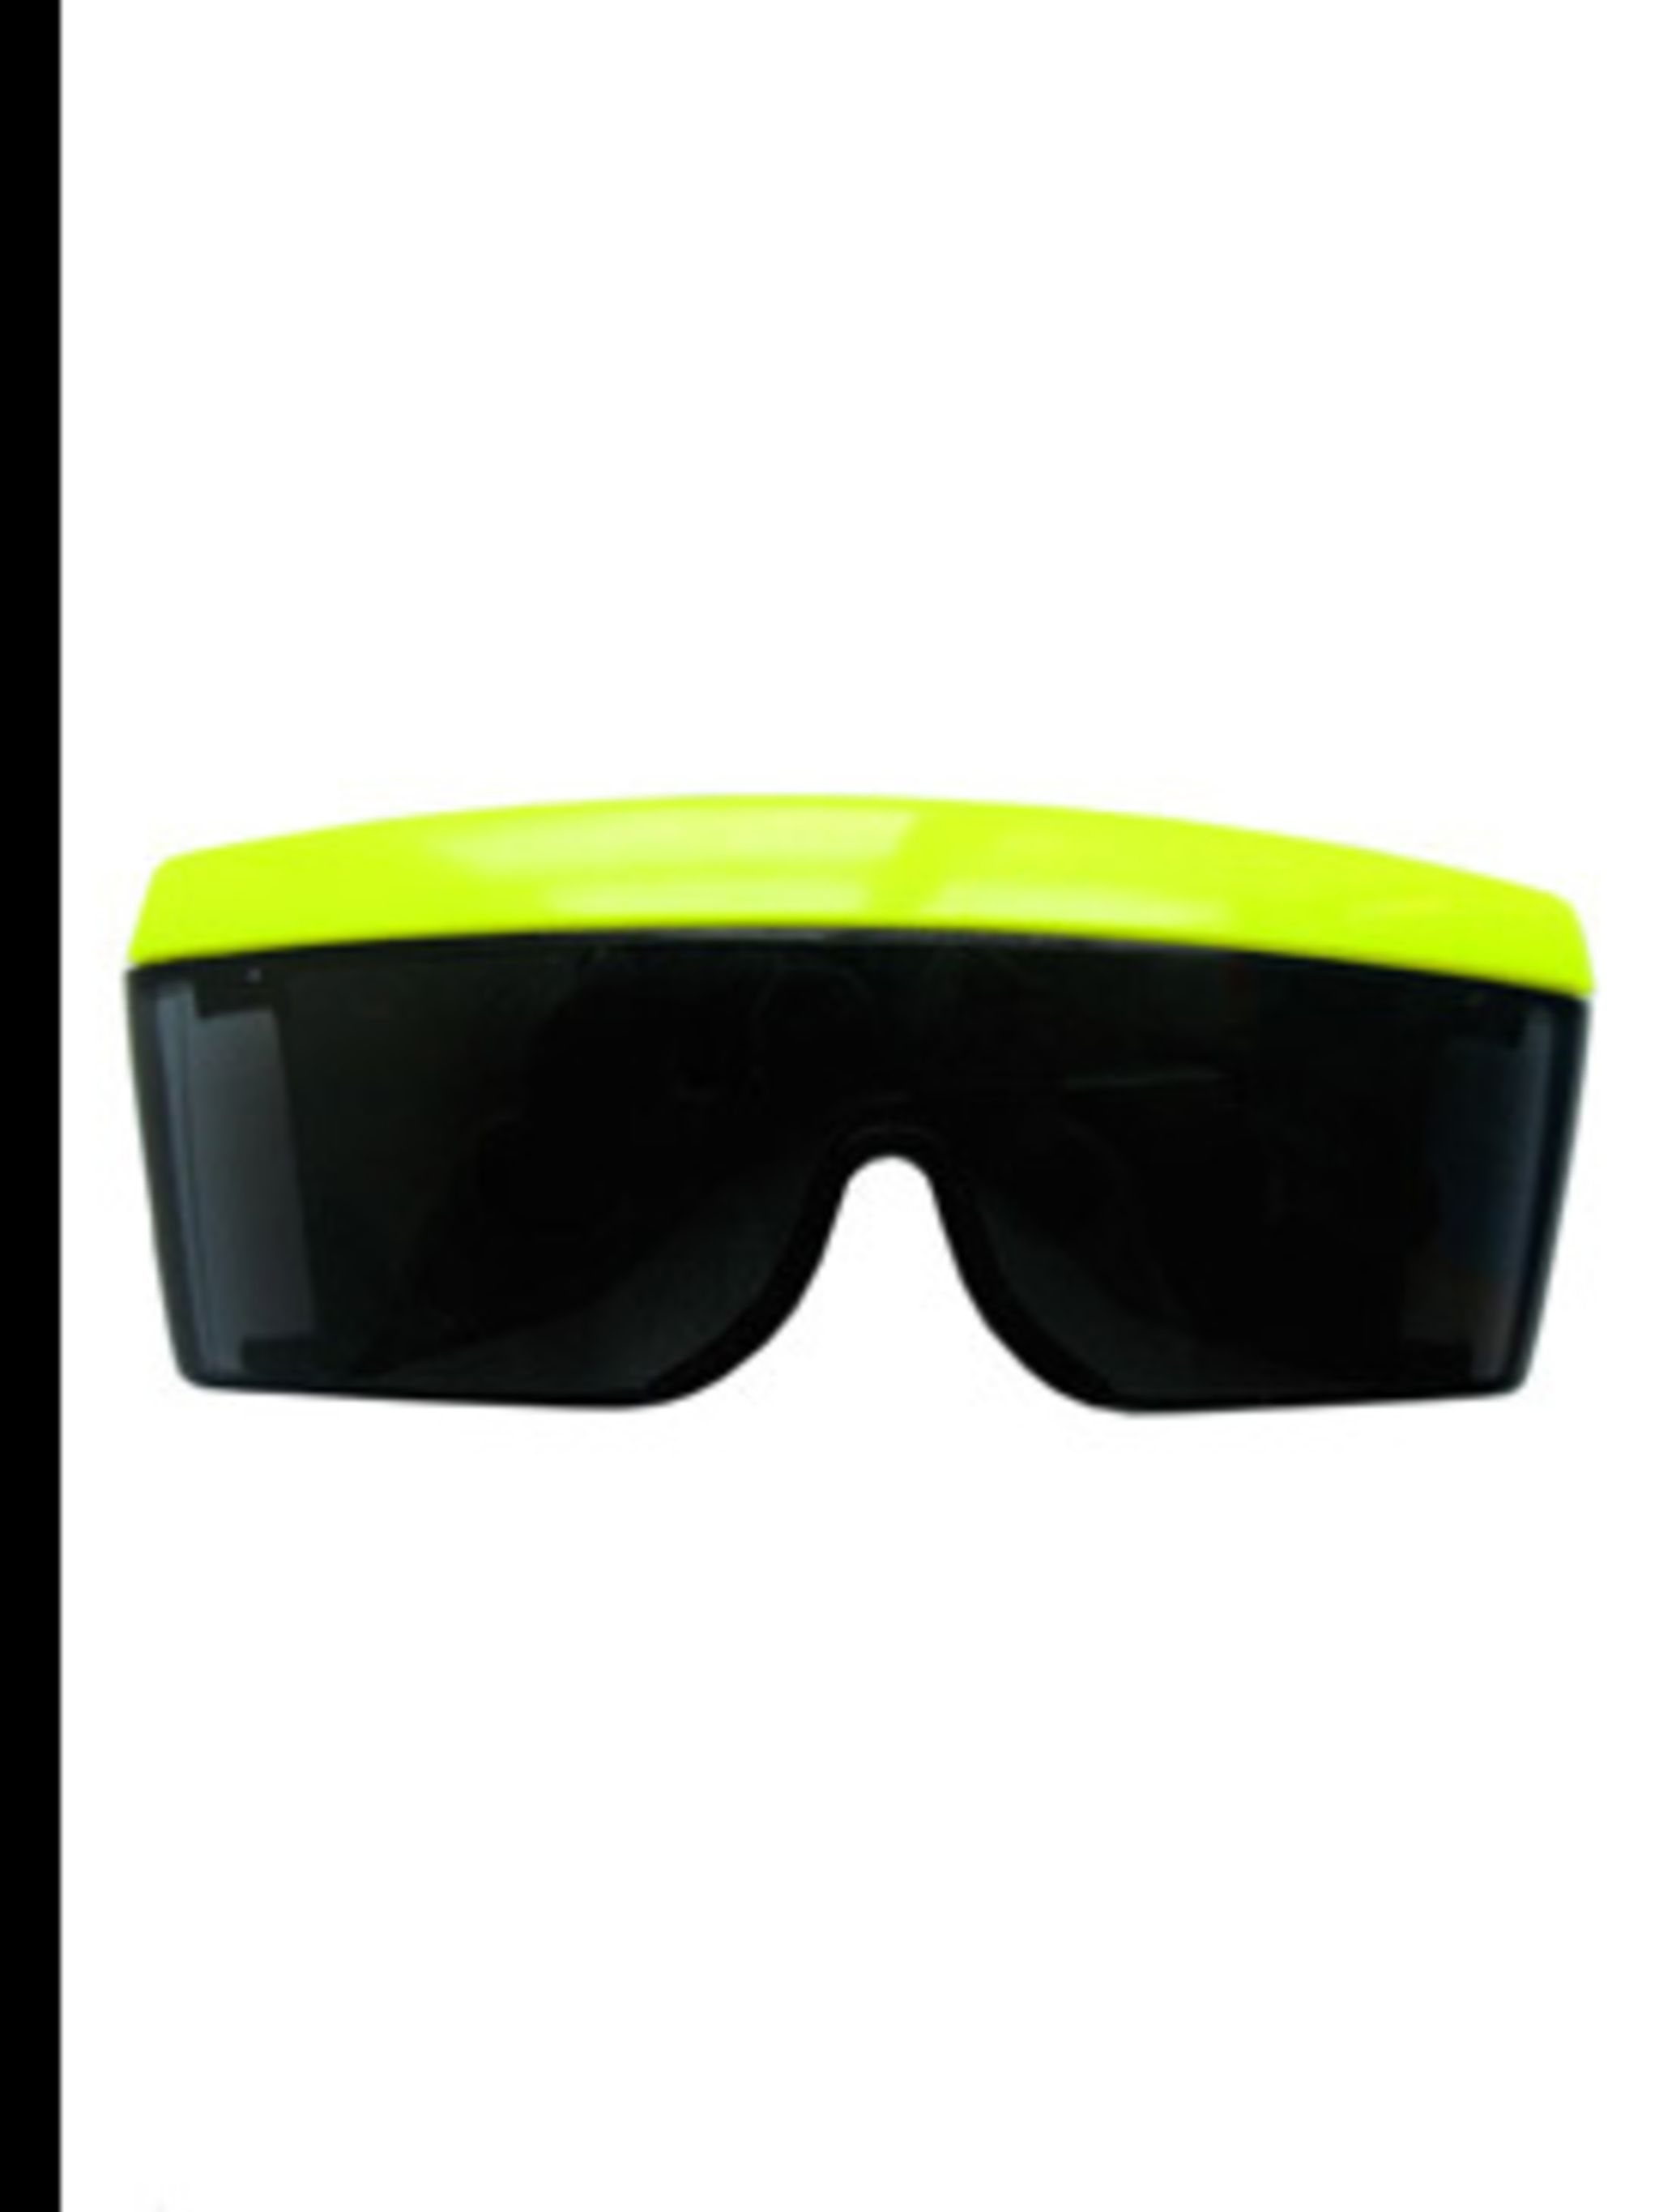 "<p>Sunglasses, £25 by <a href=""http://www.lazyoaf.co.uk/product_info.php?cPath=72_83&amp&#x3B;products_id=1287"">Lazy Oaf</a></p>"